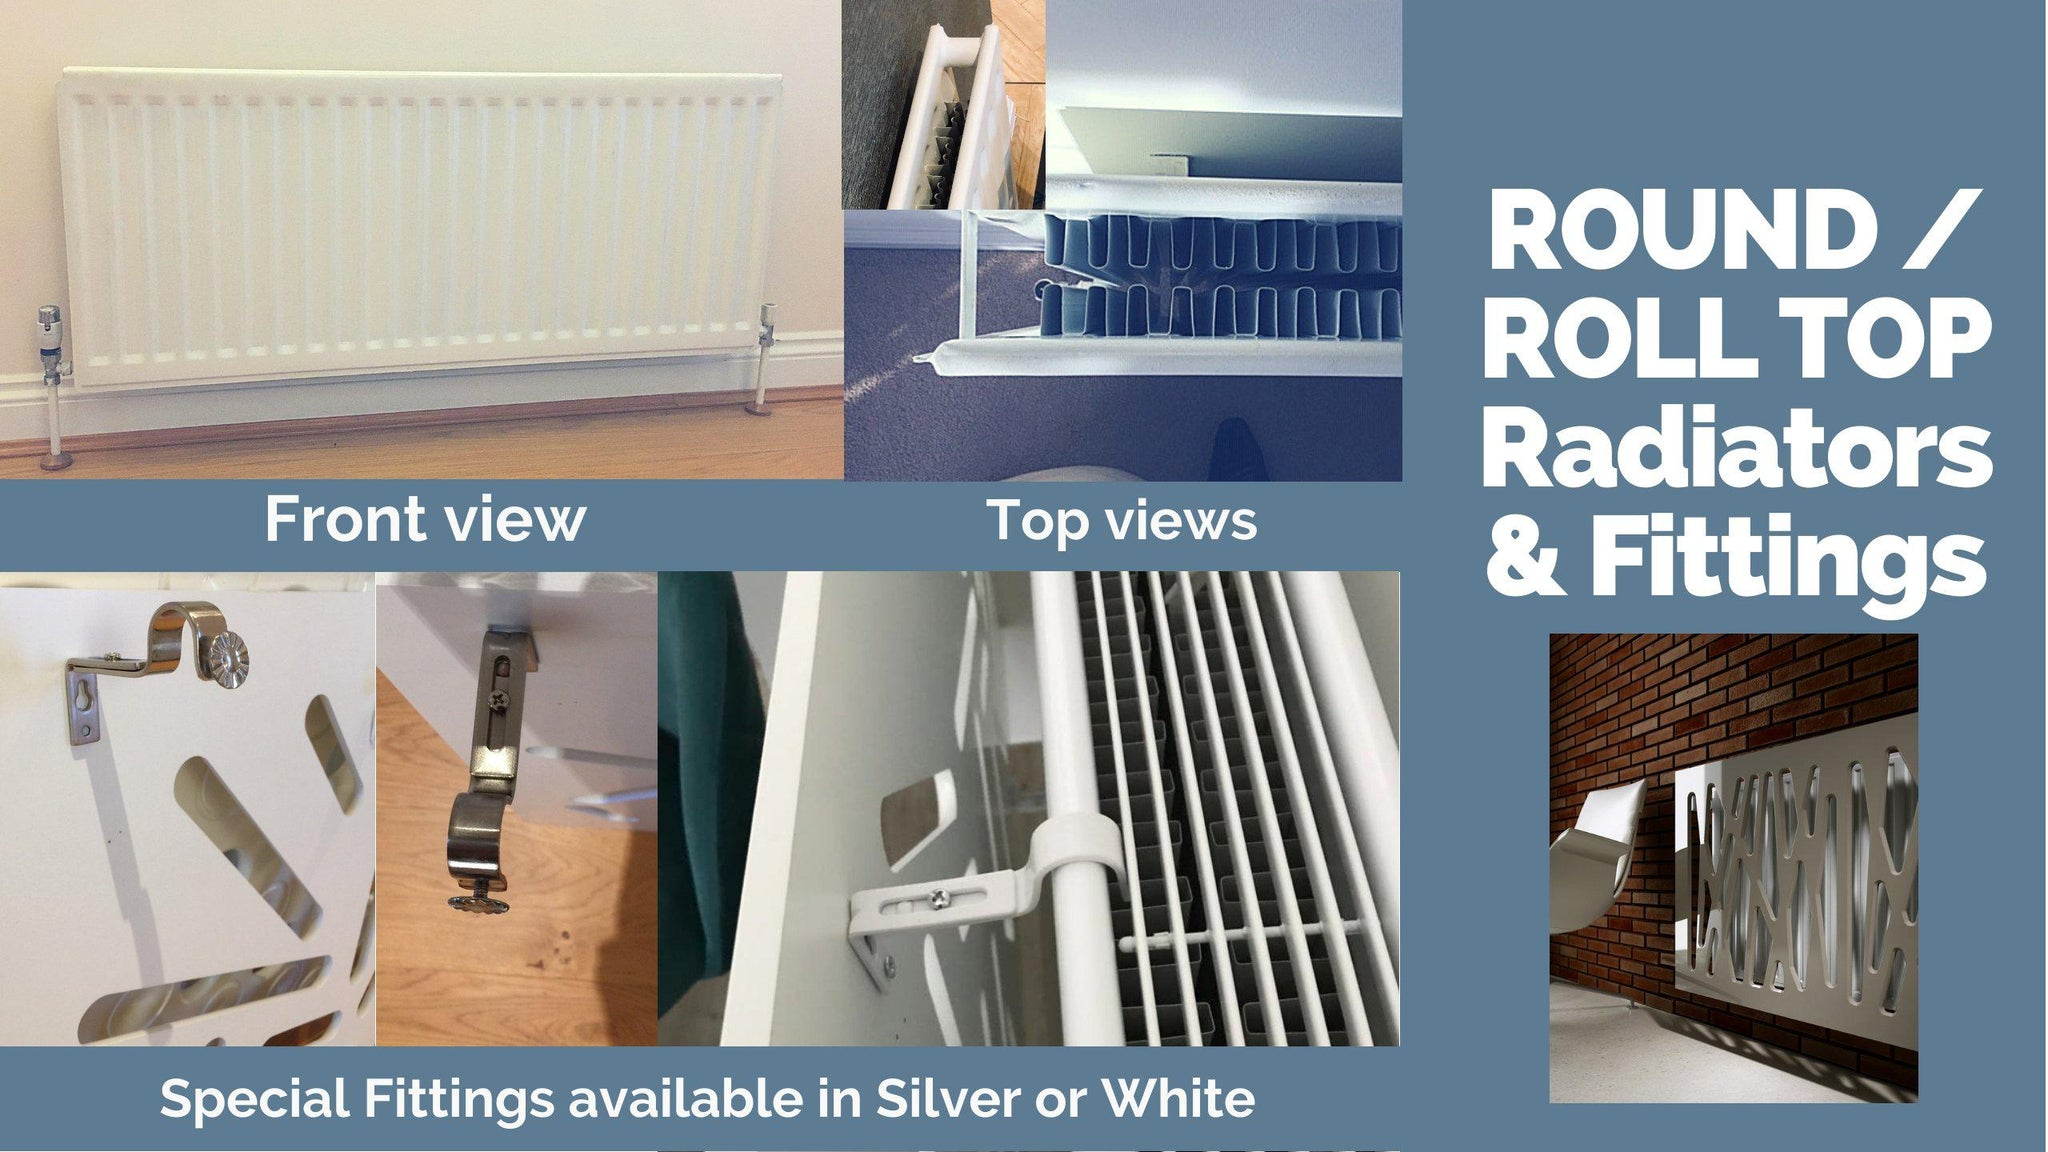 Radiator Cover Fittings For Column Roll Round Top Heaters Towel Rails Distinct Designs London Ltd